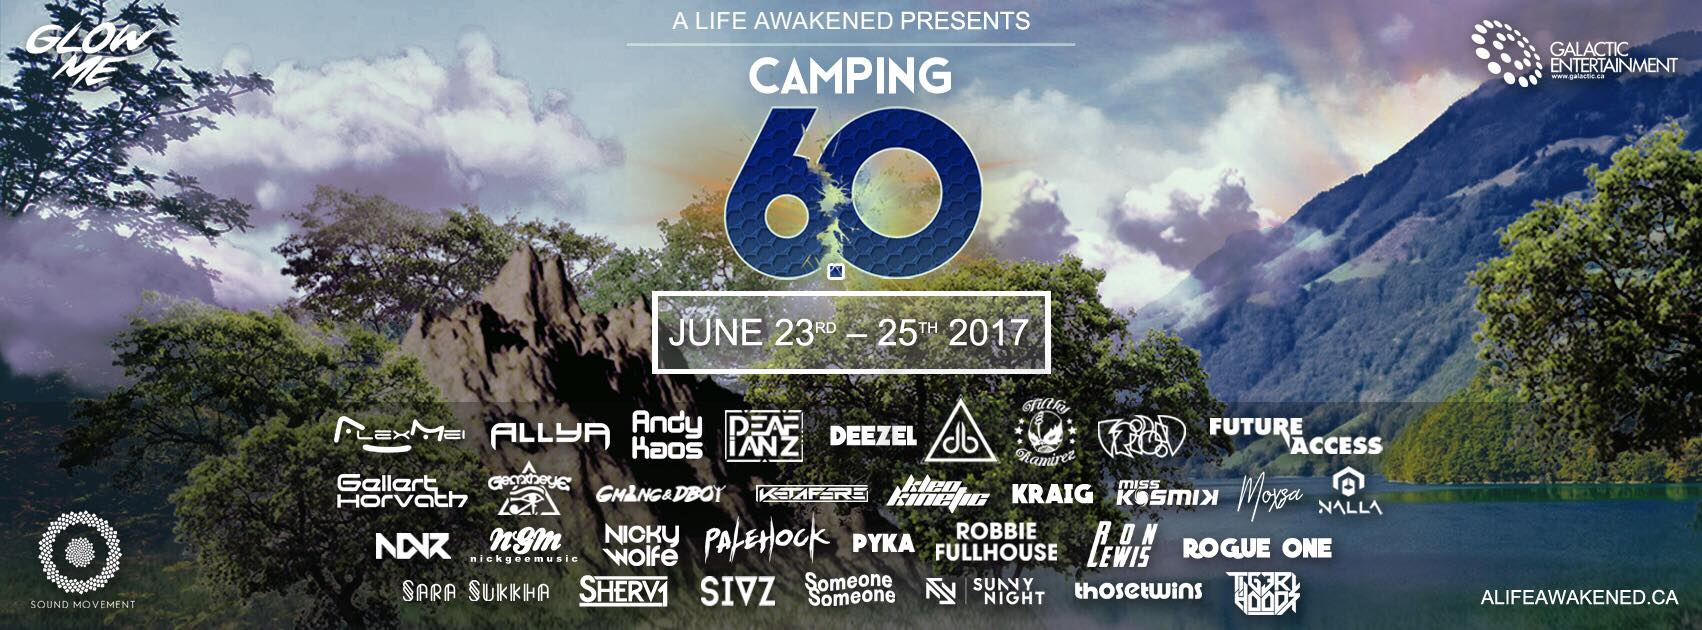 Camping 6.0 by A life Awakened